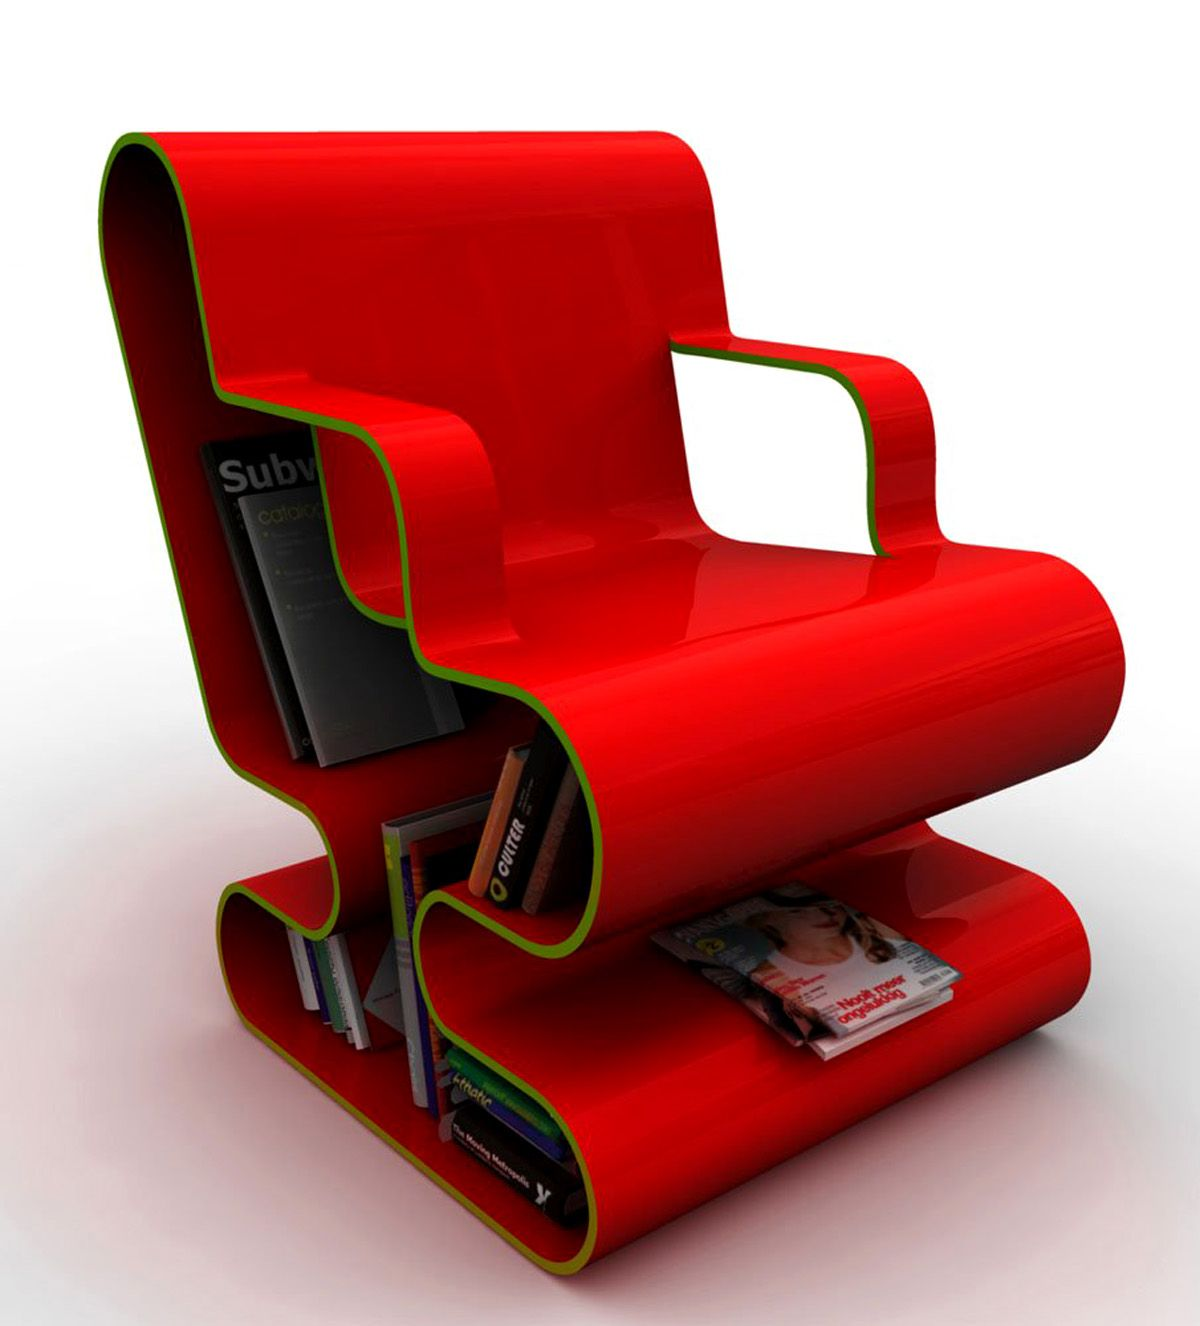 Modern furniture chairs - Unique Chair Furniture Design Is Made Of Fiber